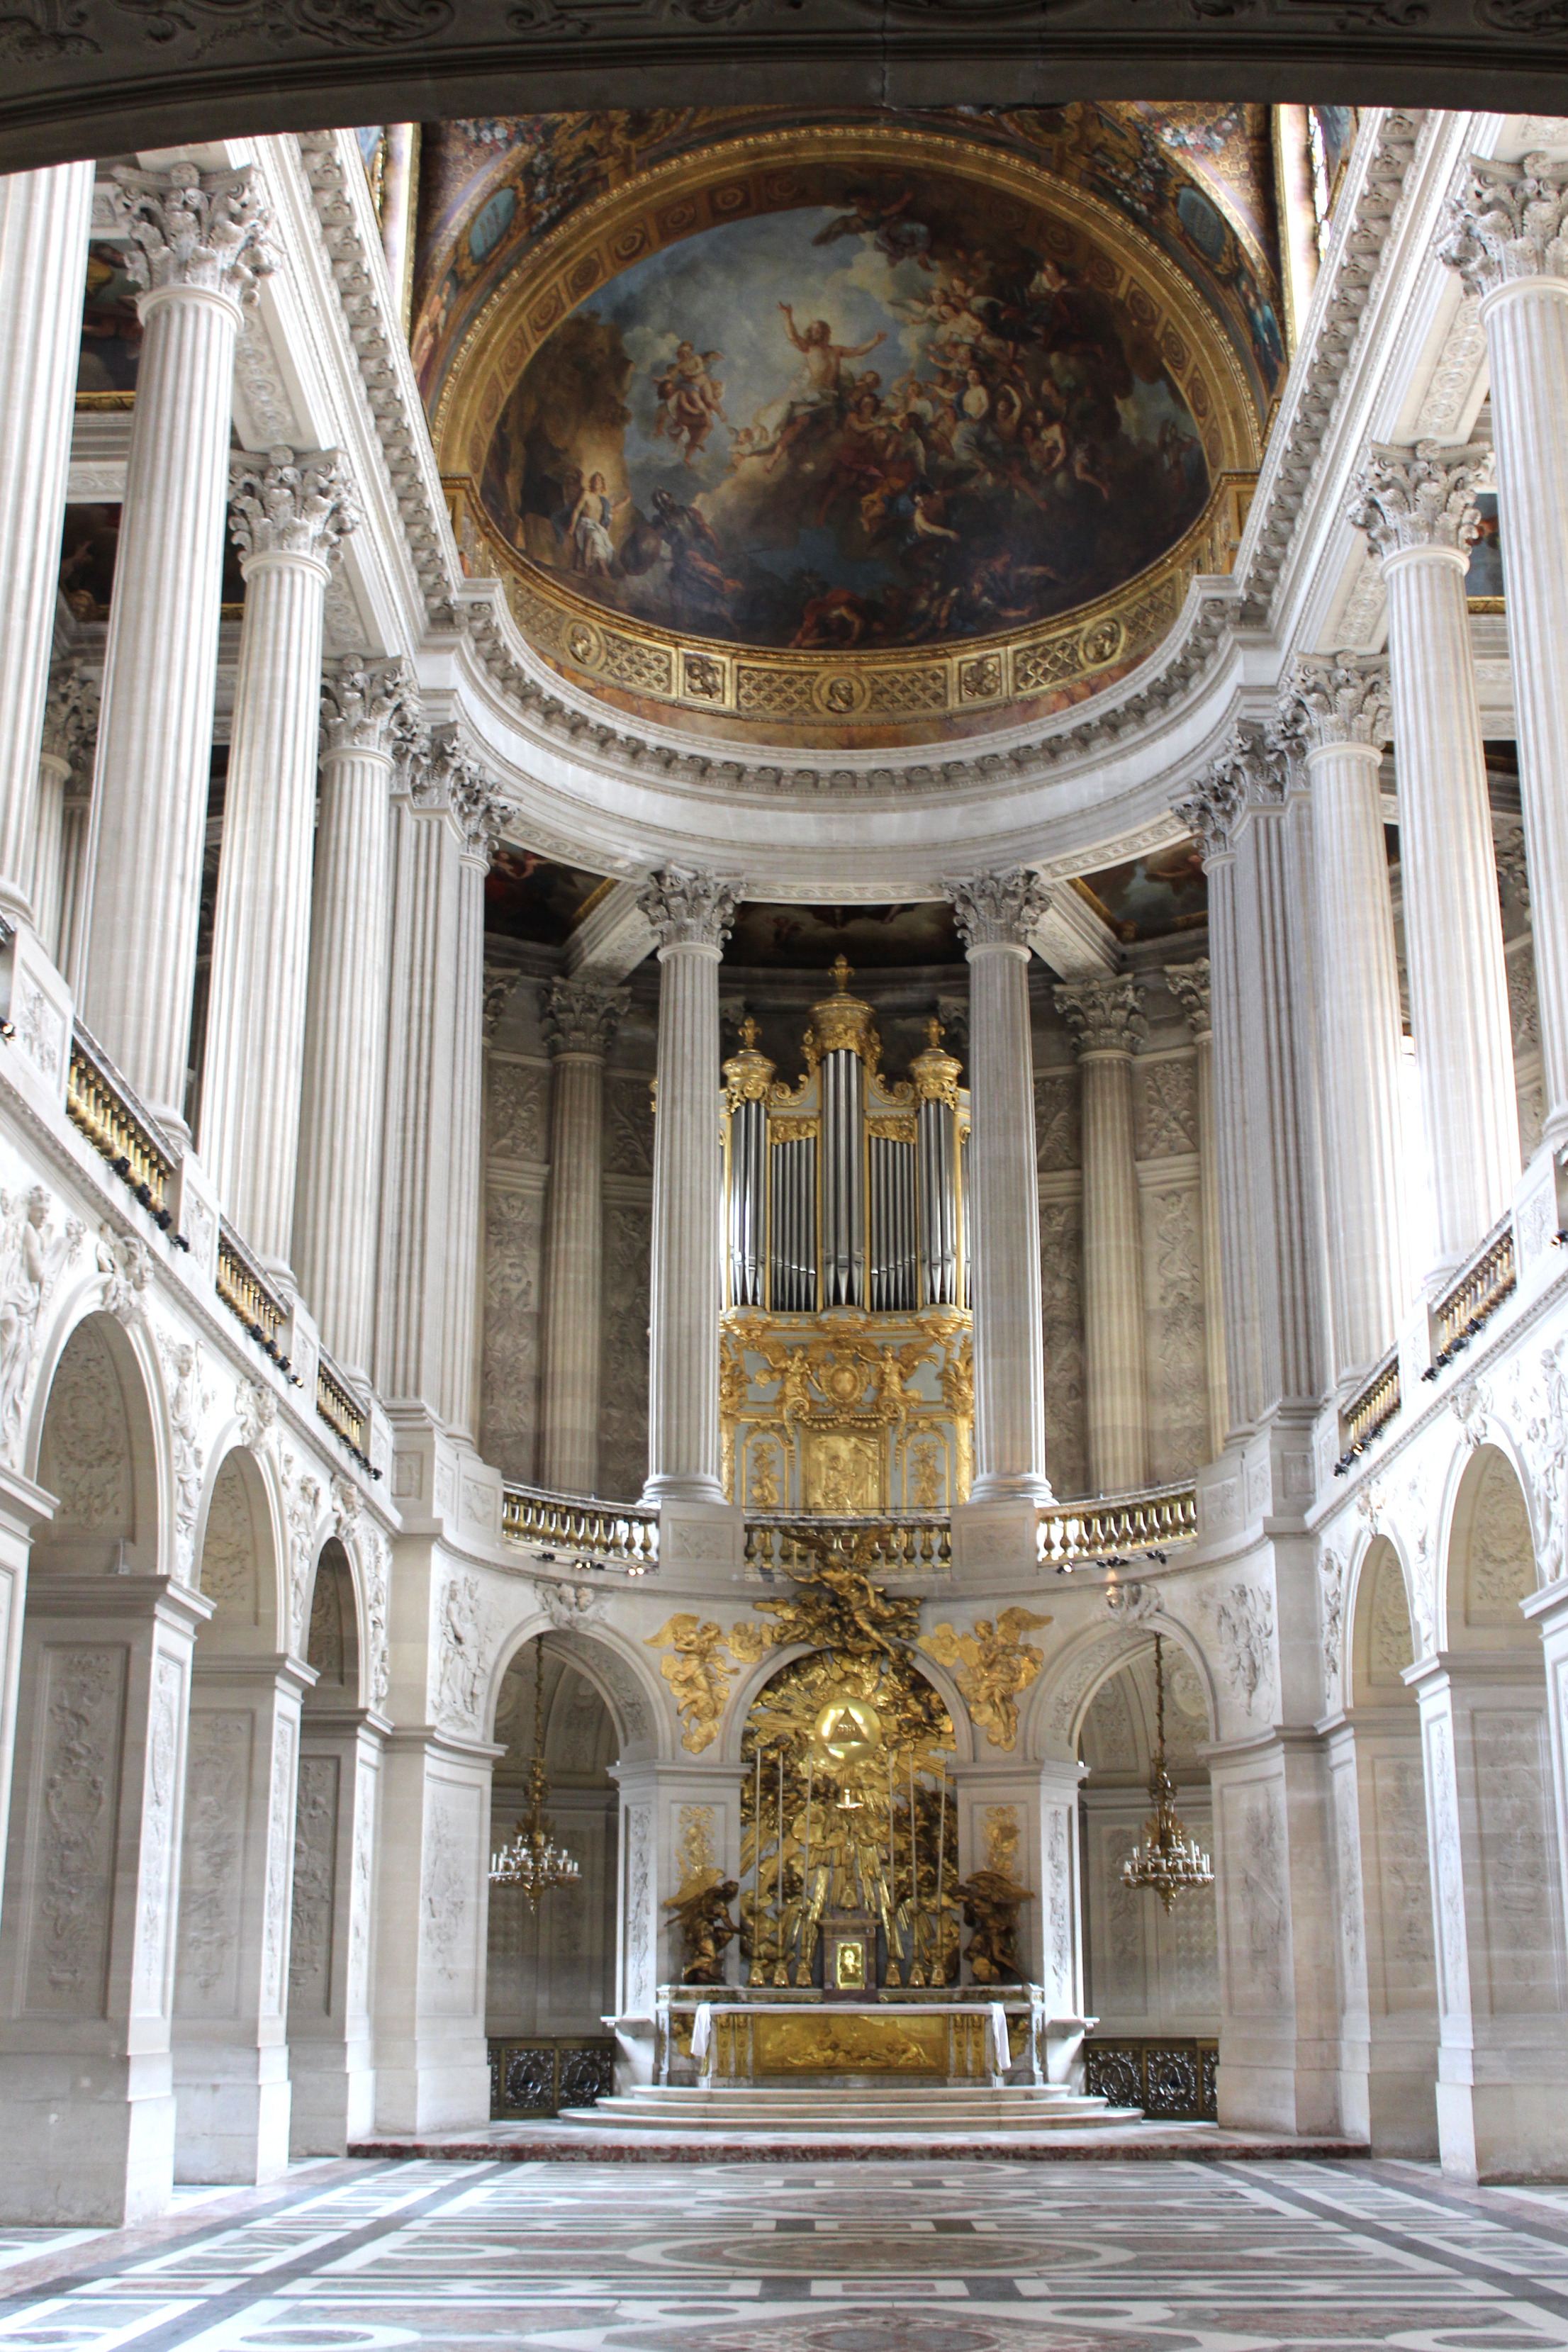 Exploring the Palace of Versailles | Selene + Abroad